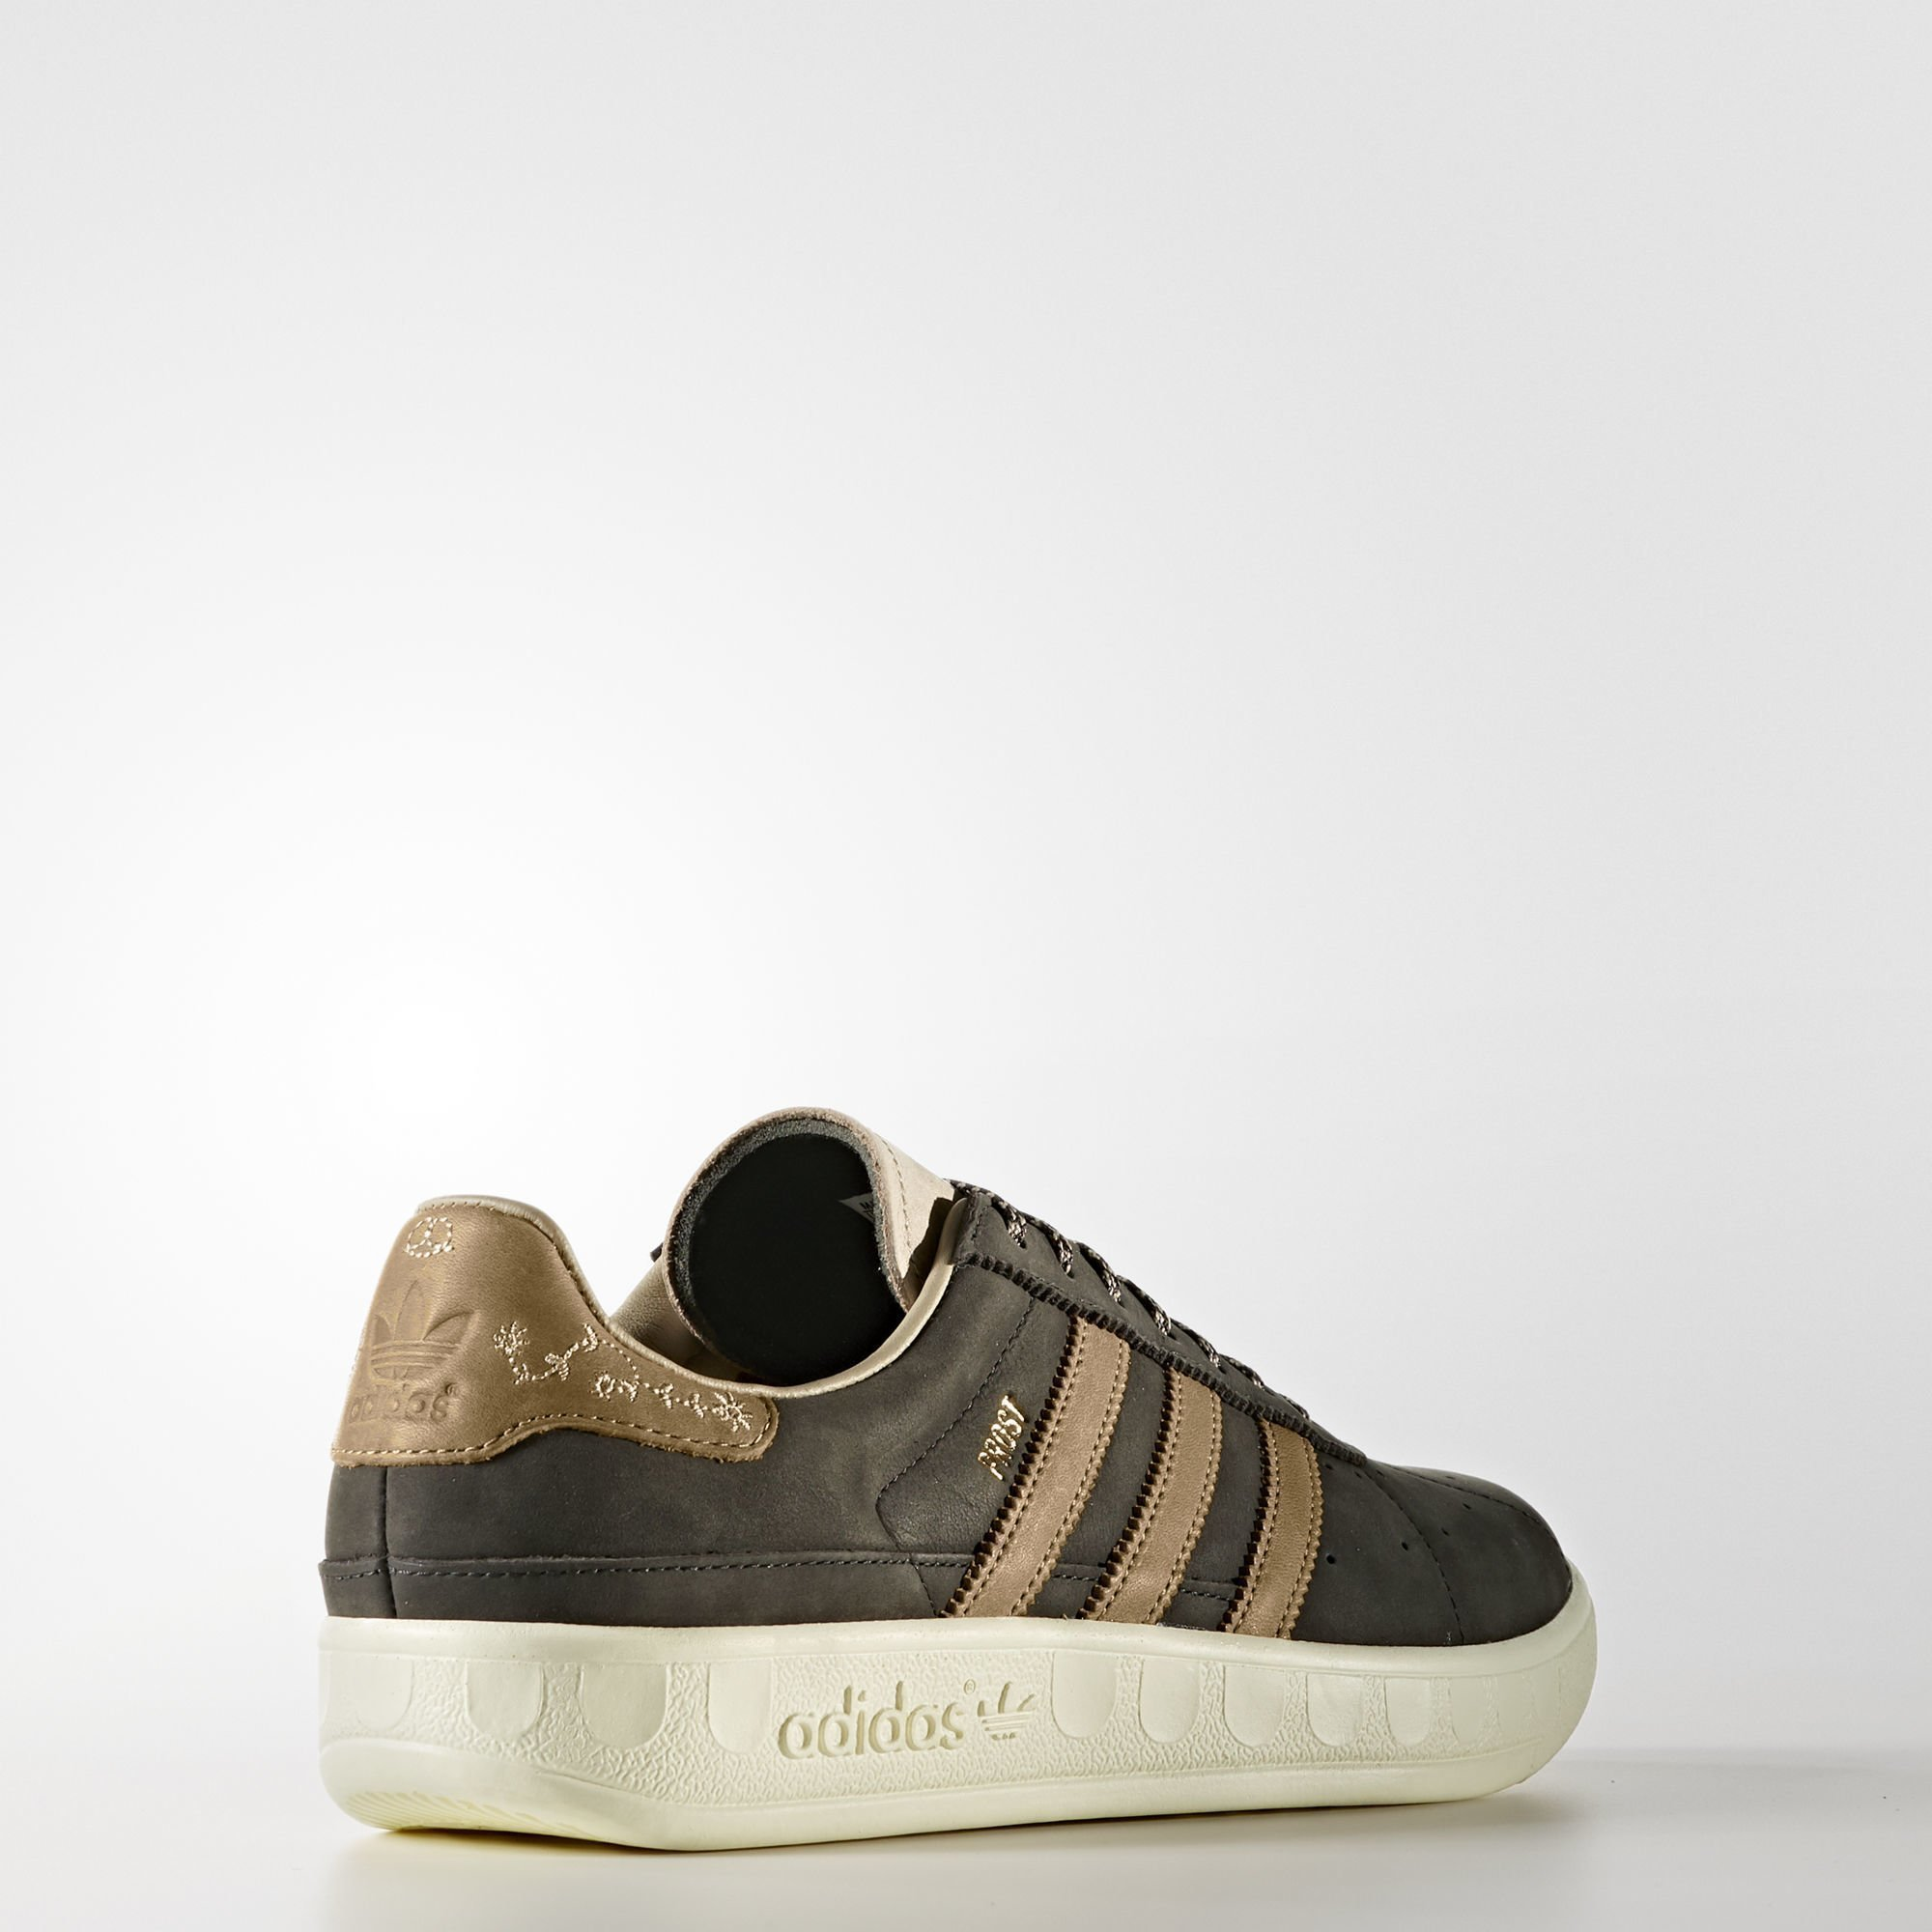 adidas – München Oktoberfest Made in Germany (BY9805)